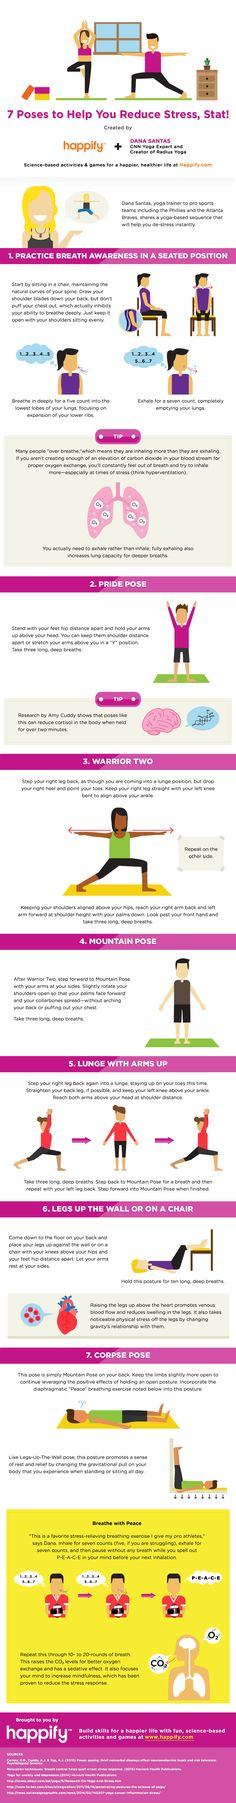 7 Breathing Exercises To Help You Reduce Stress (Infographic)…